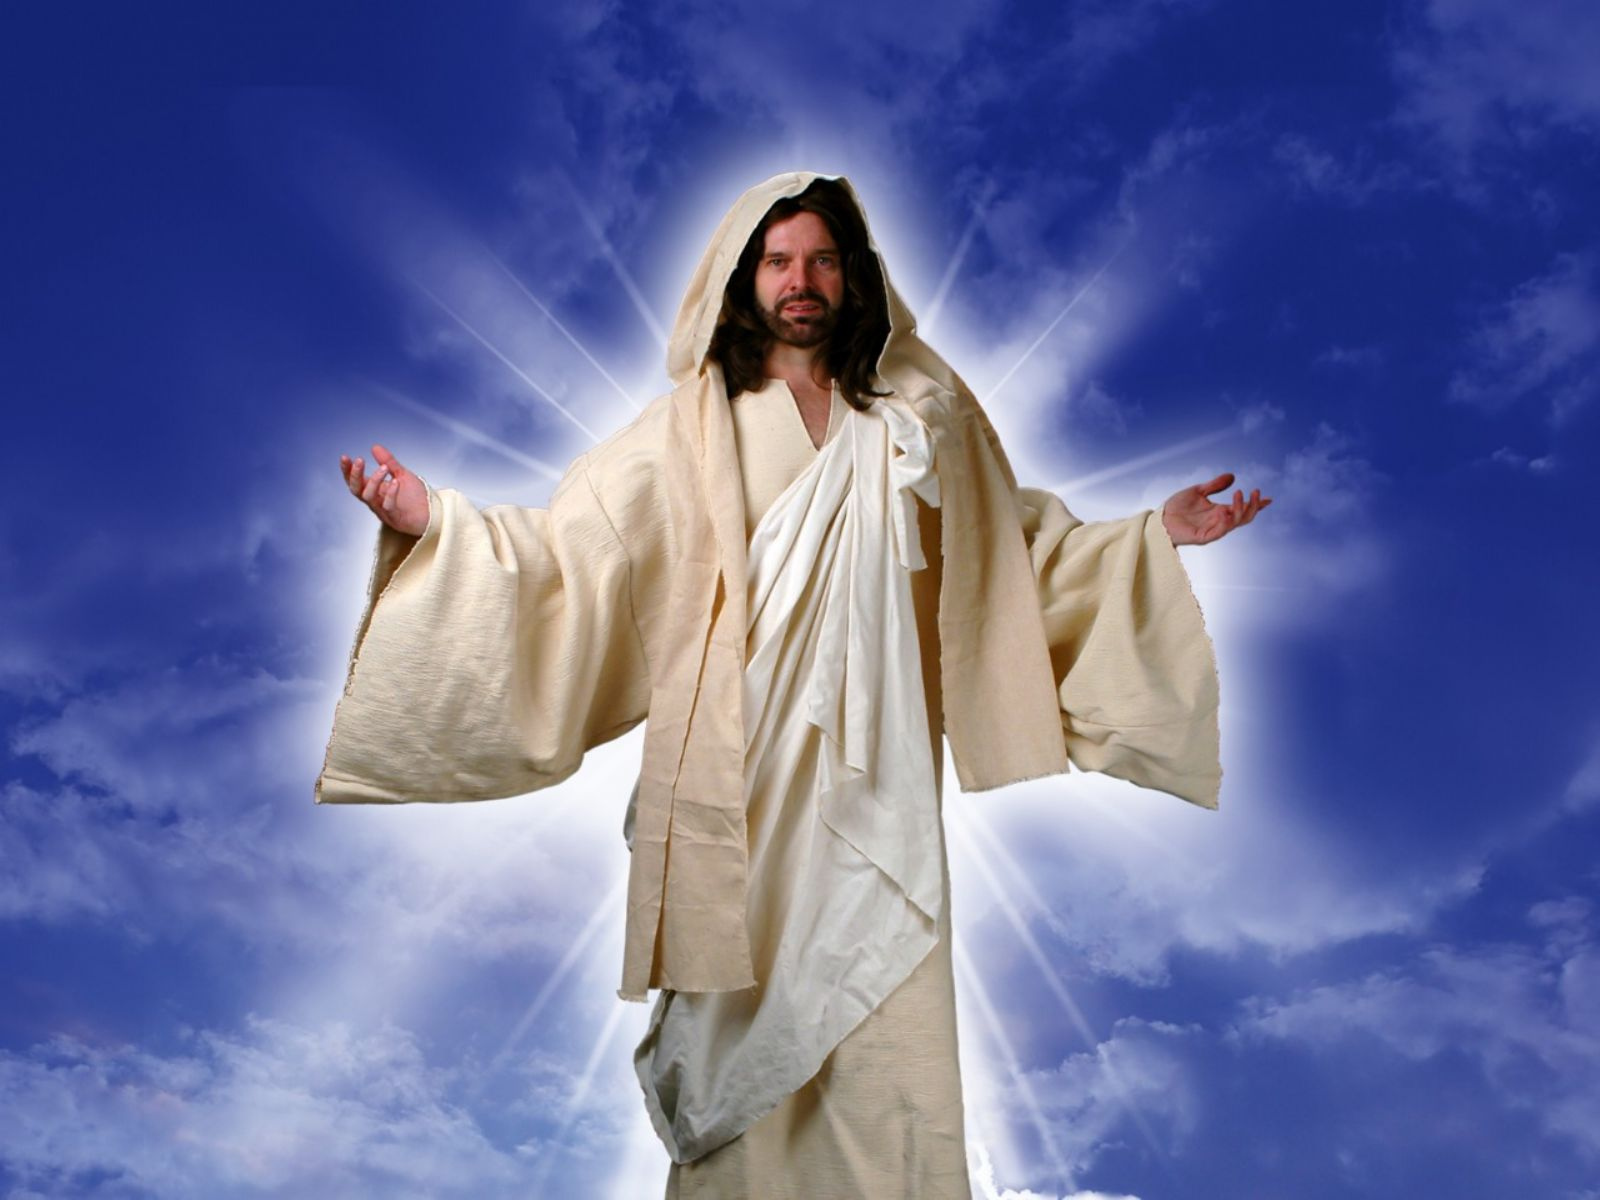 Lord Jesus Hd Wallpapers God Wallpaper Hd